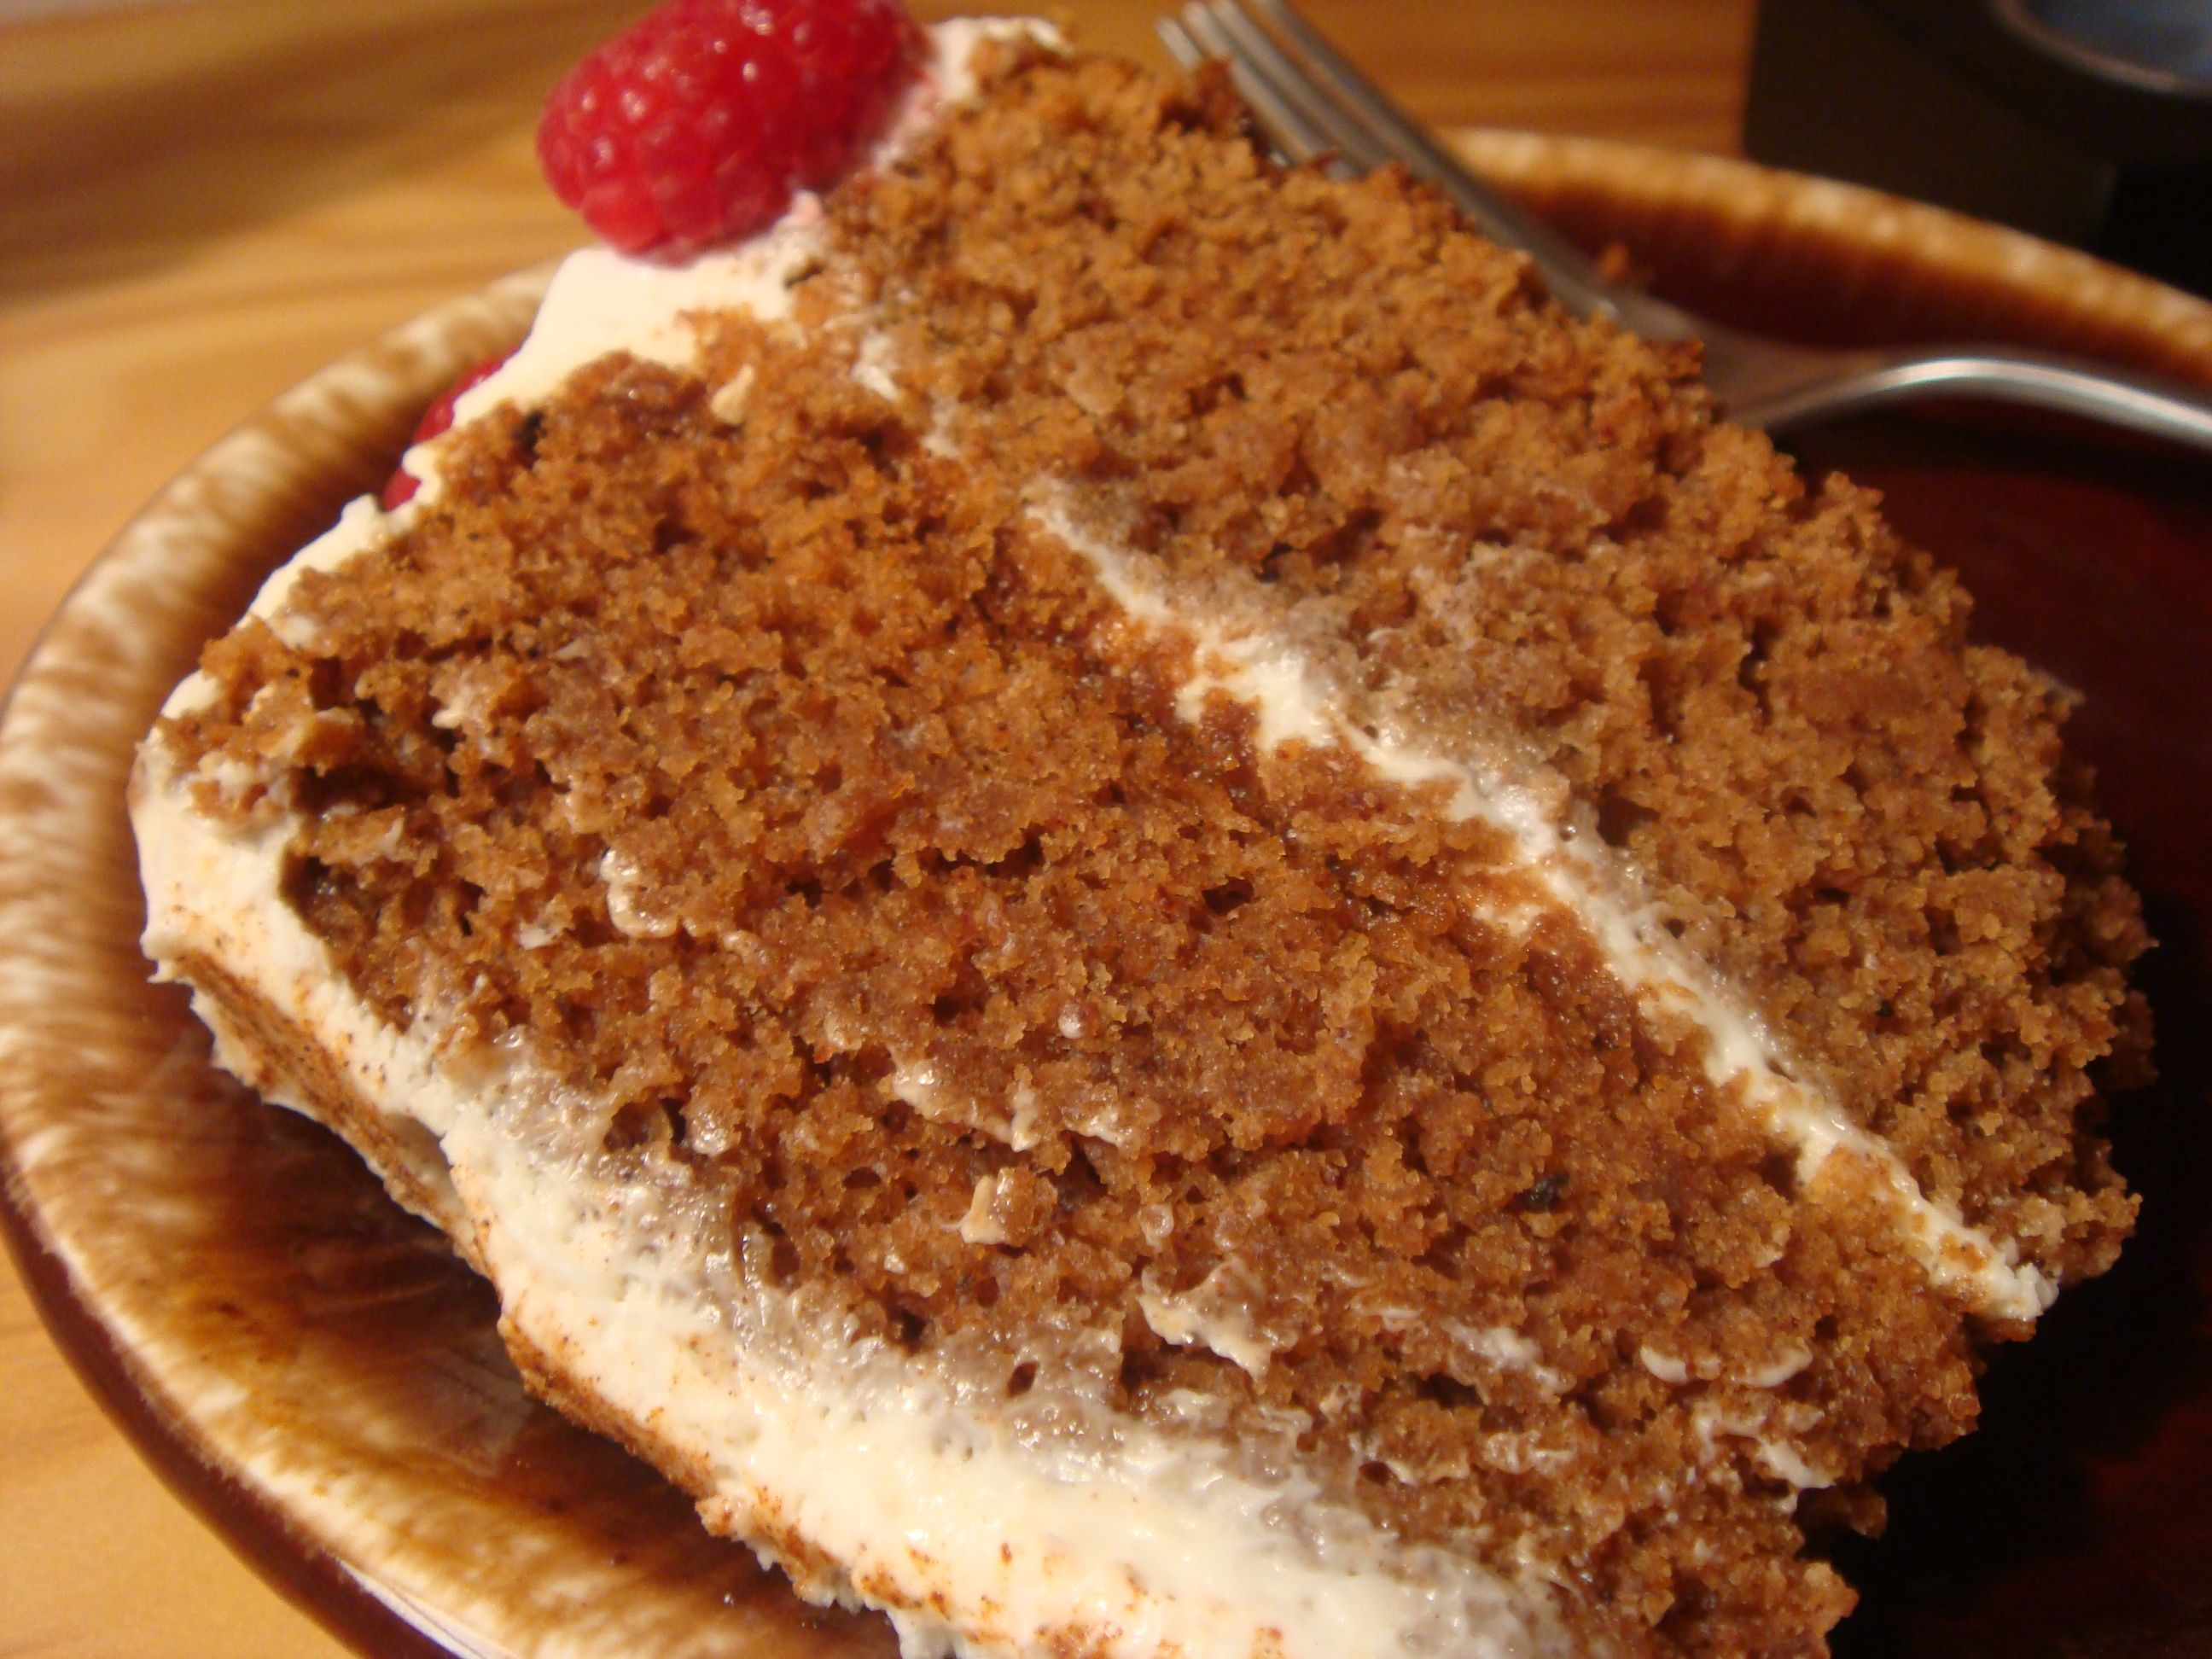 Spice cake mix recipe with applesauce